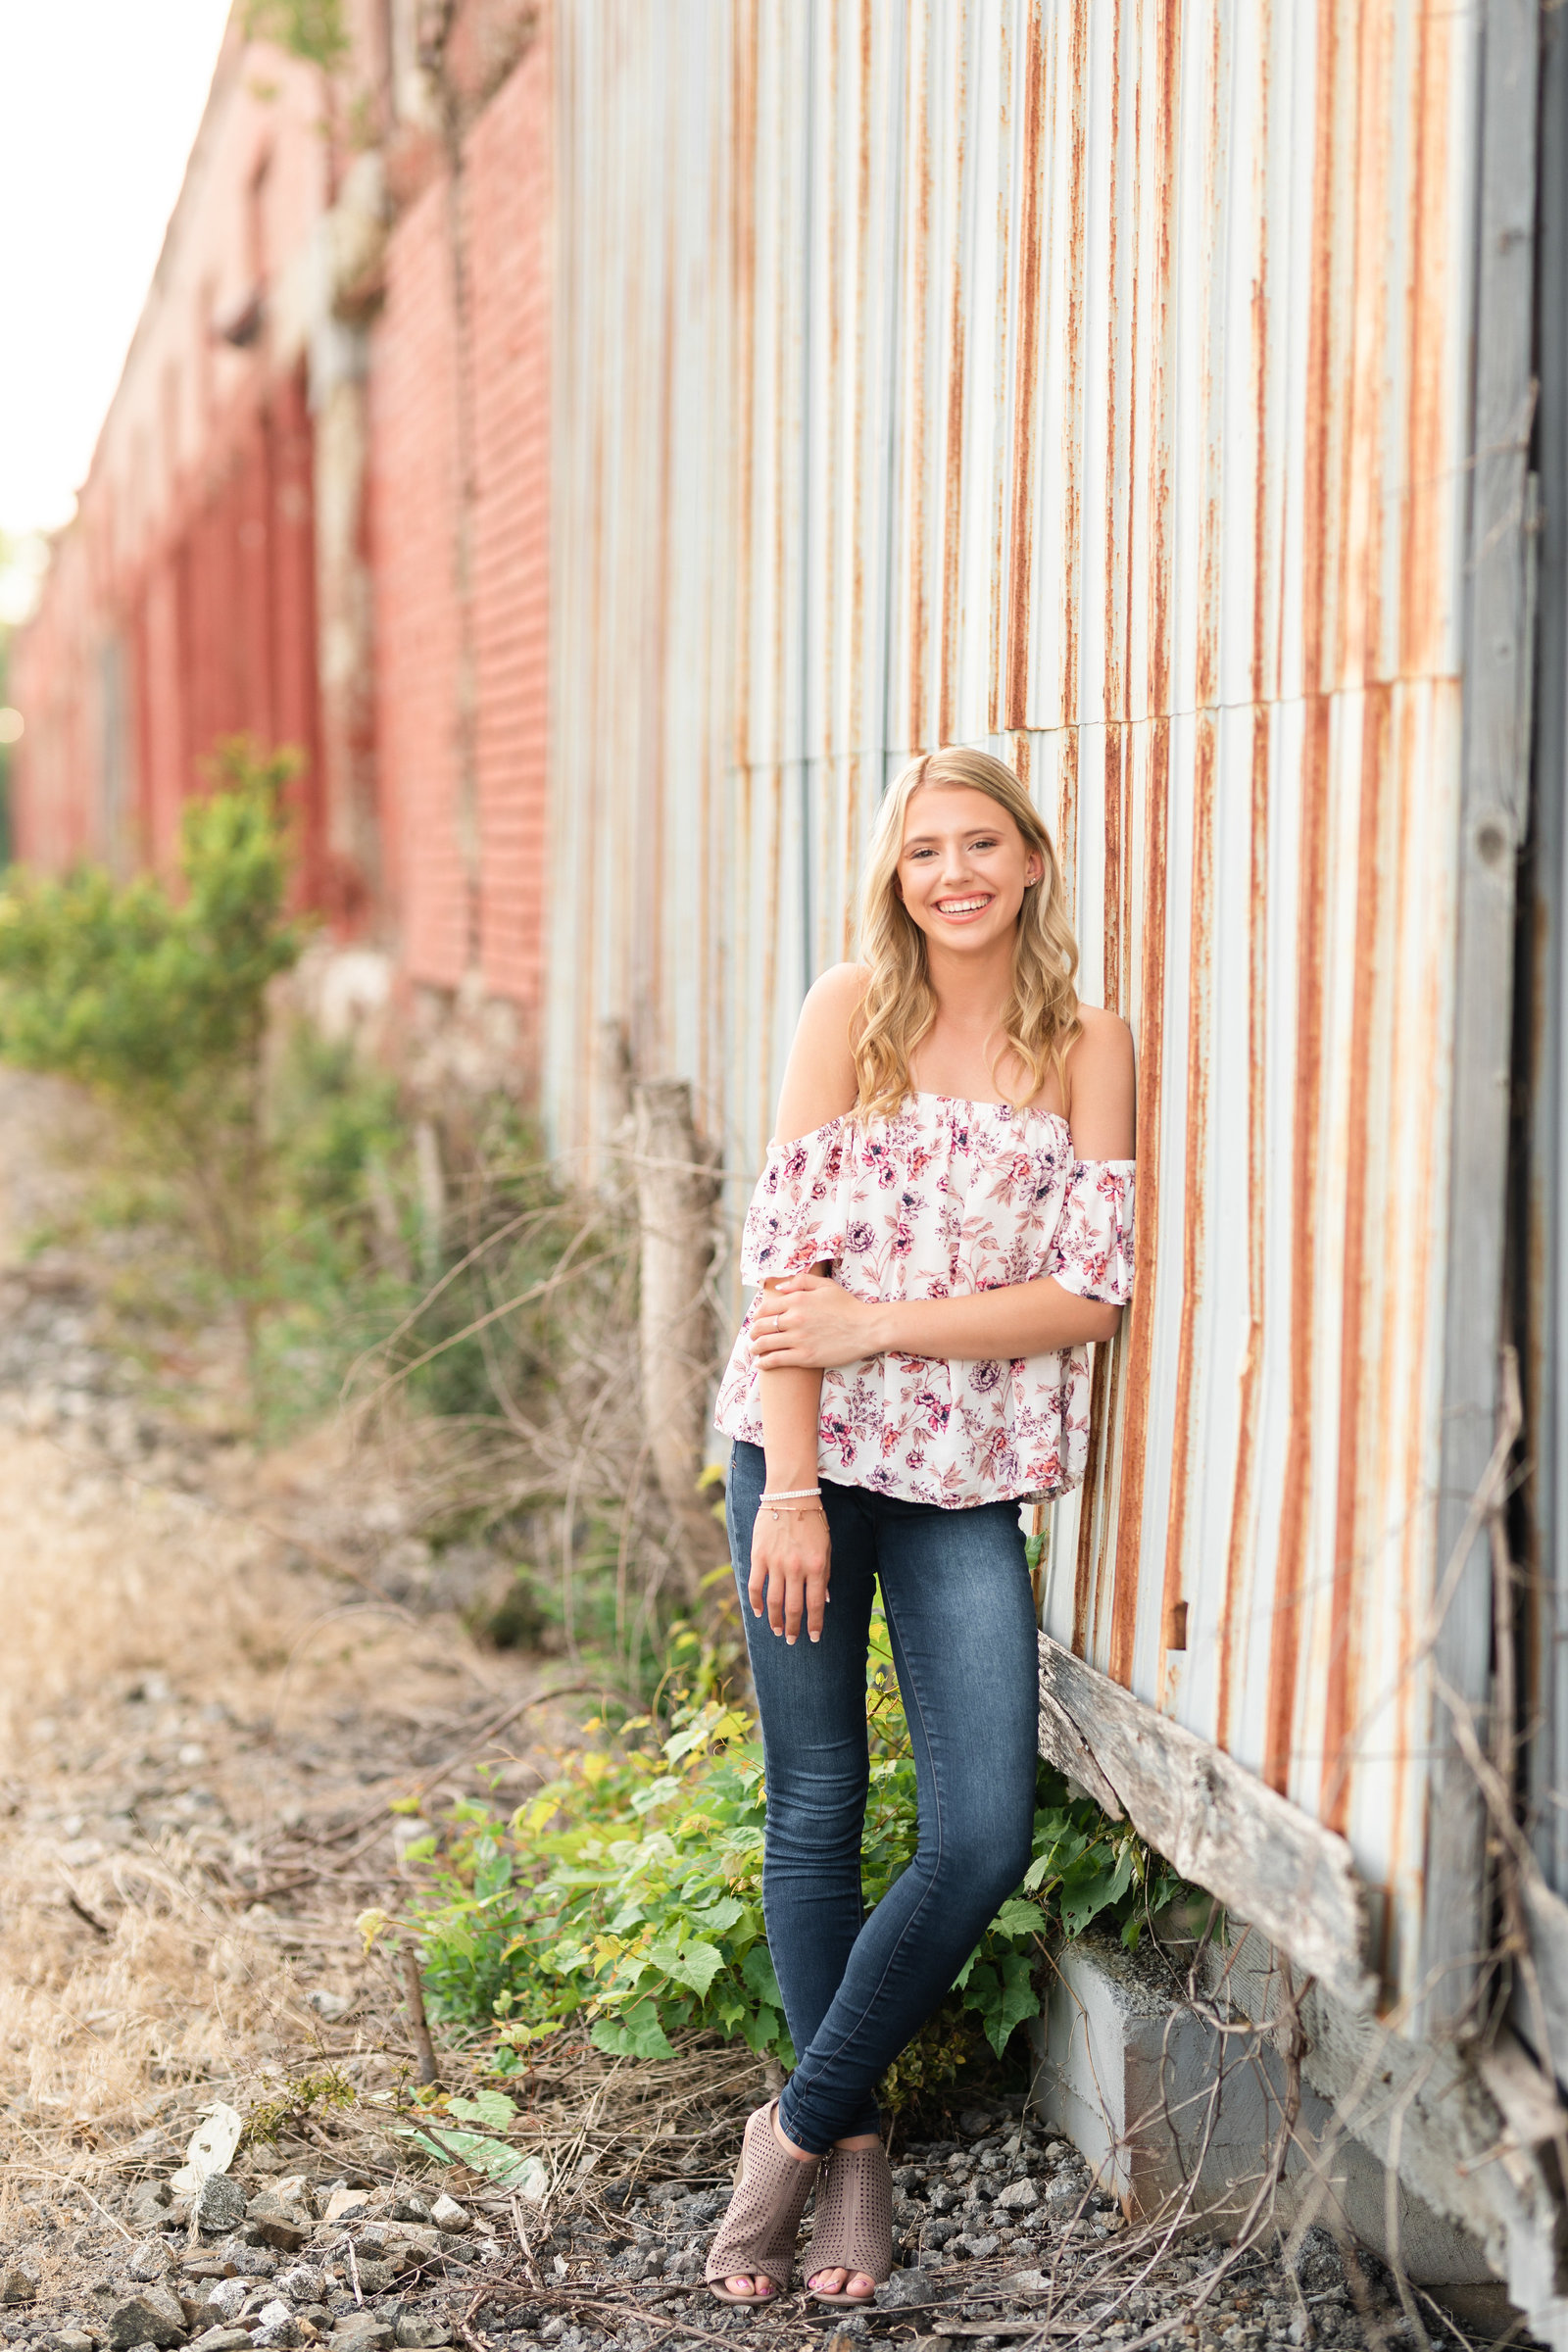 Kankakee County Senior Photographer-Bourbonnais IL Senior Photography 98823